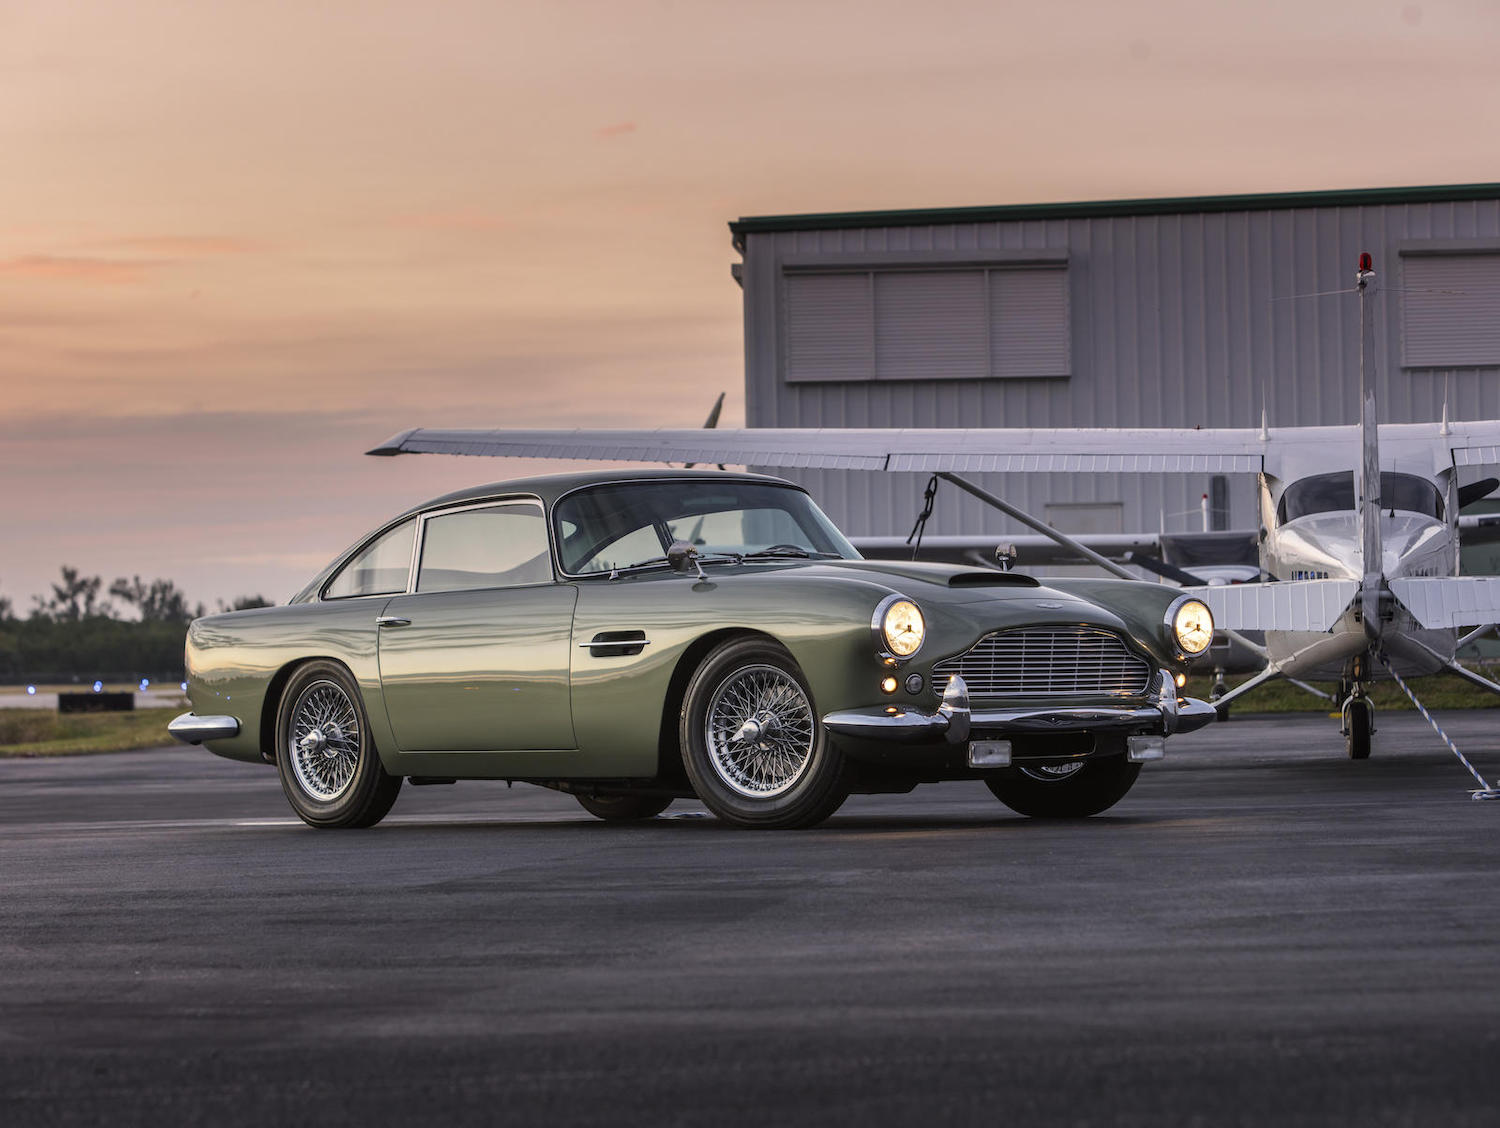 1962 aston martin db4 series 4 gt front three-quarter